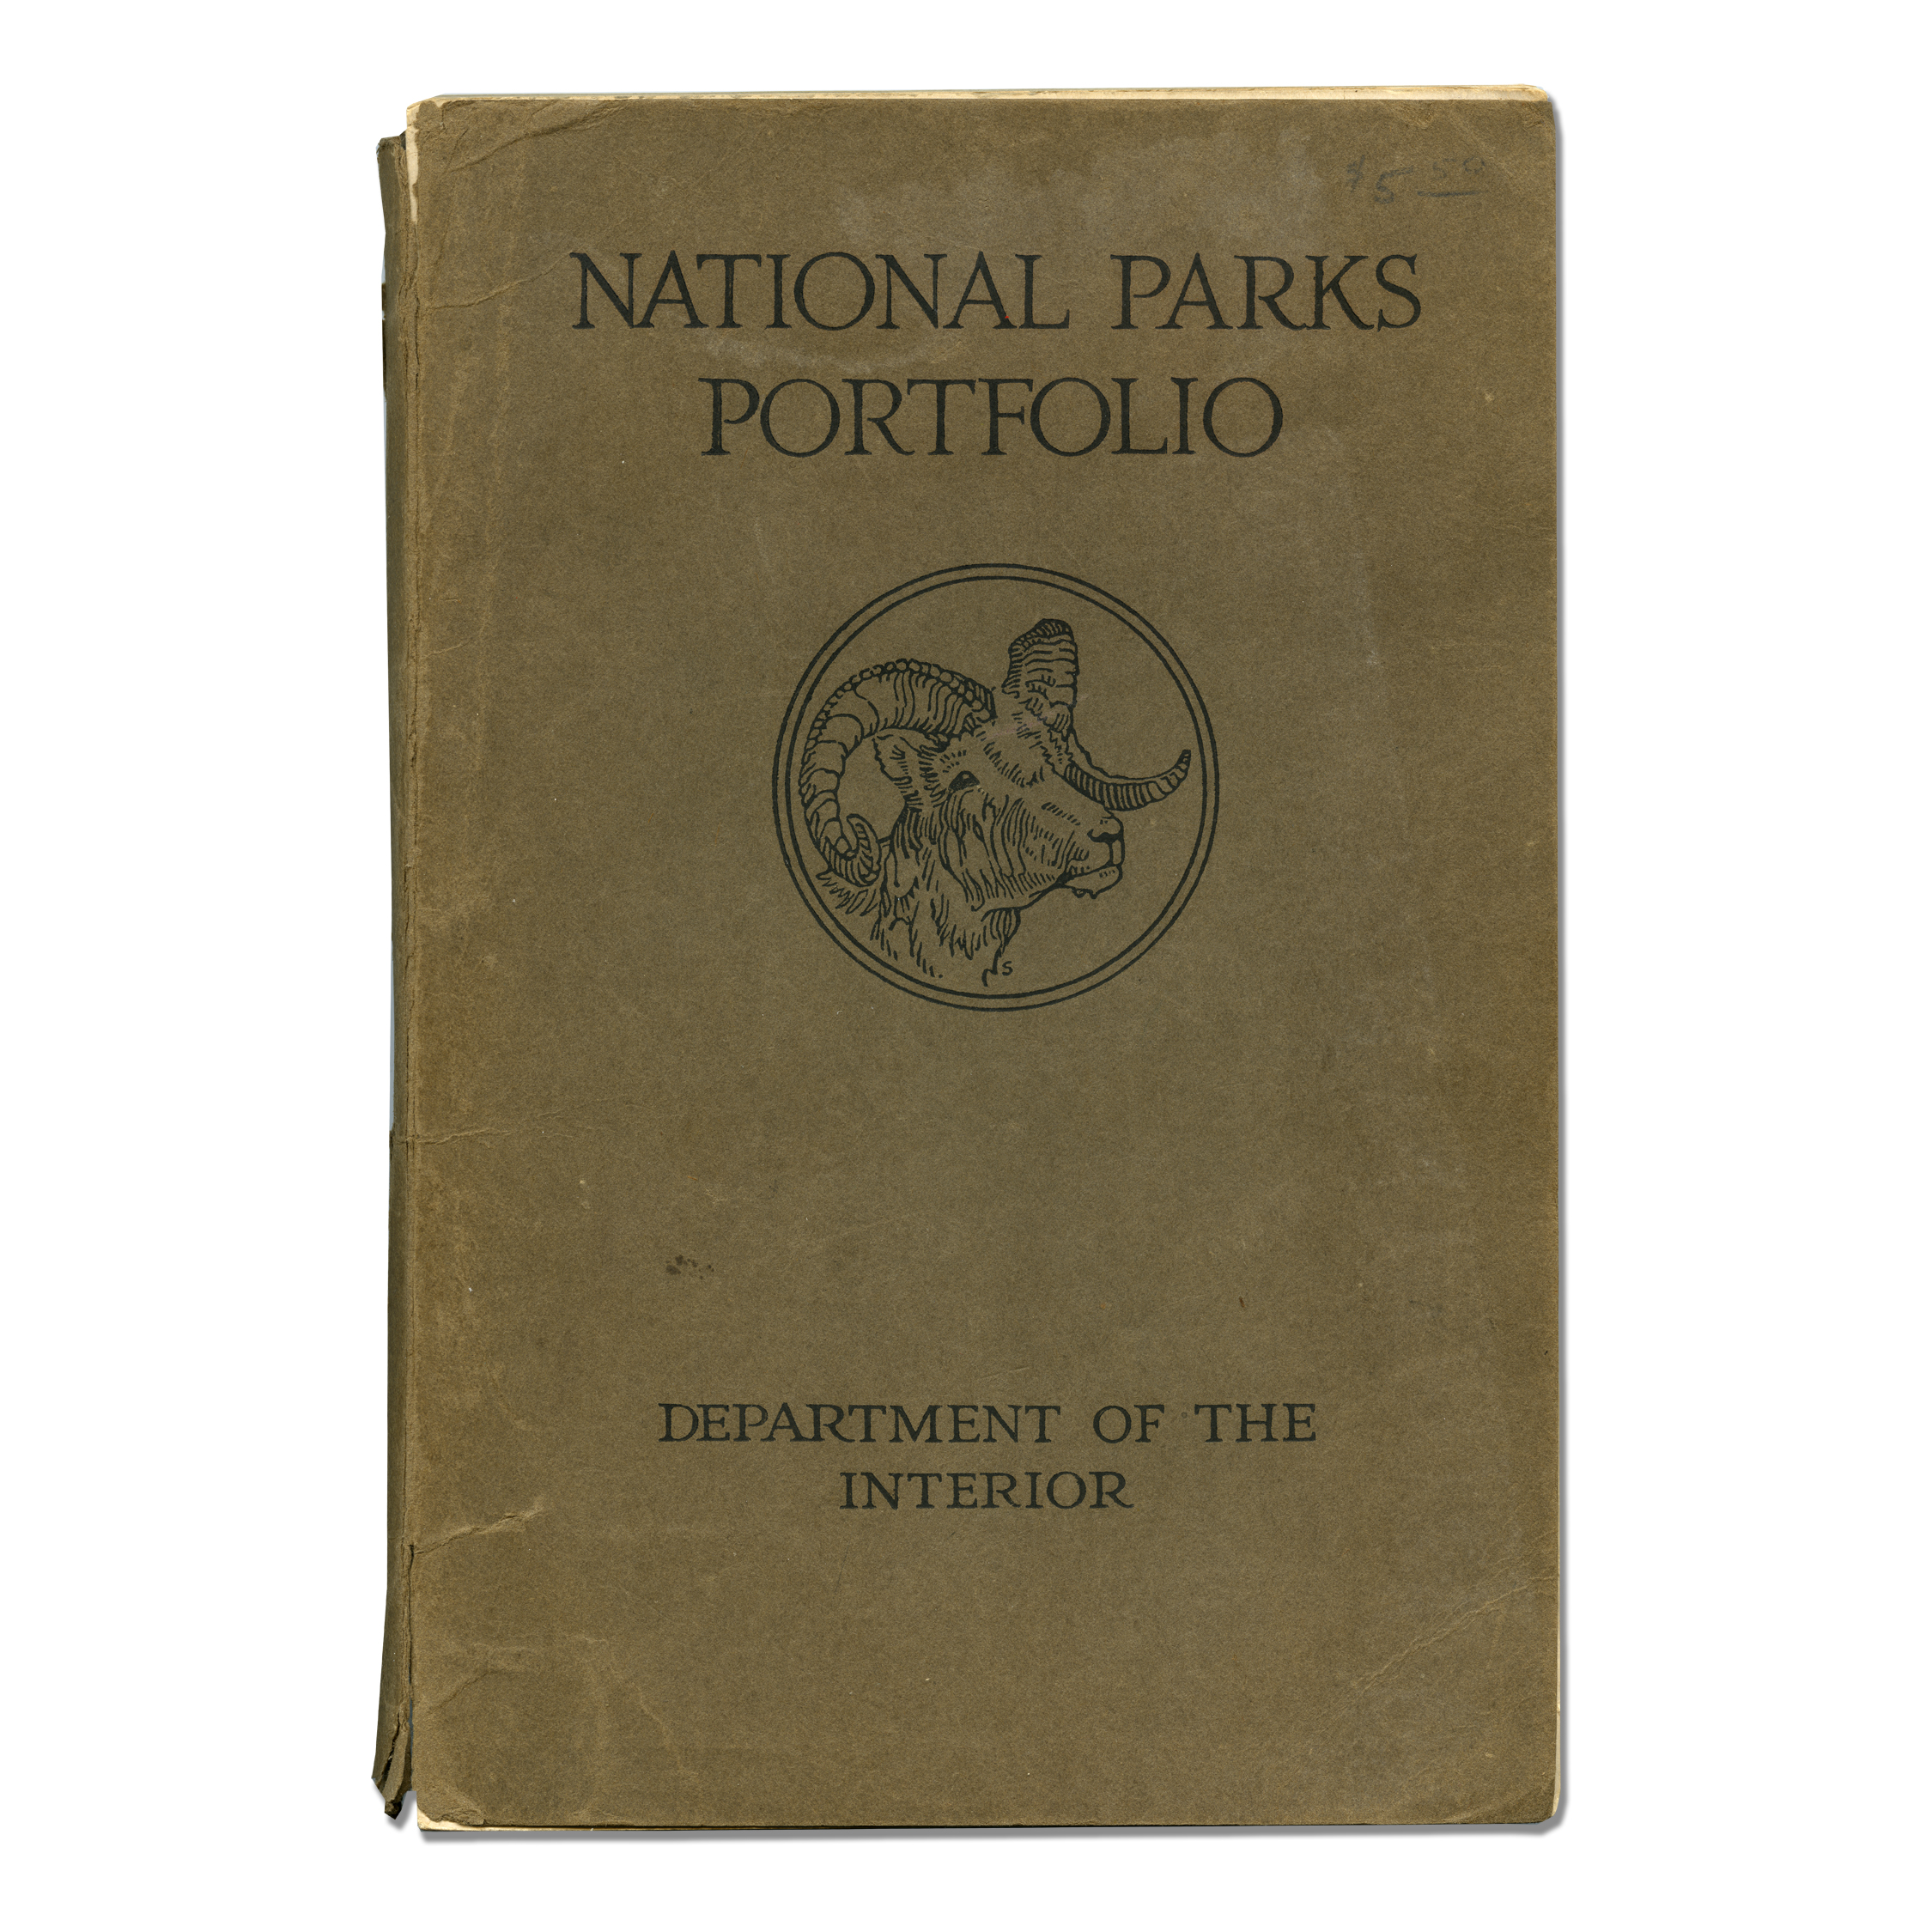 1916_national_parks_portfolio_department_of_the_interior.jpg